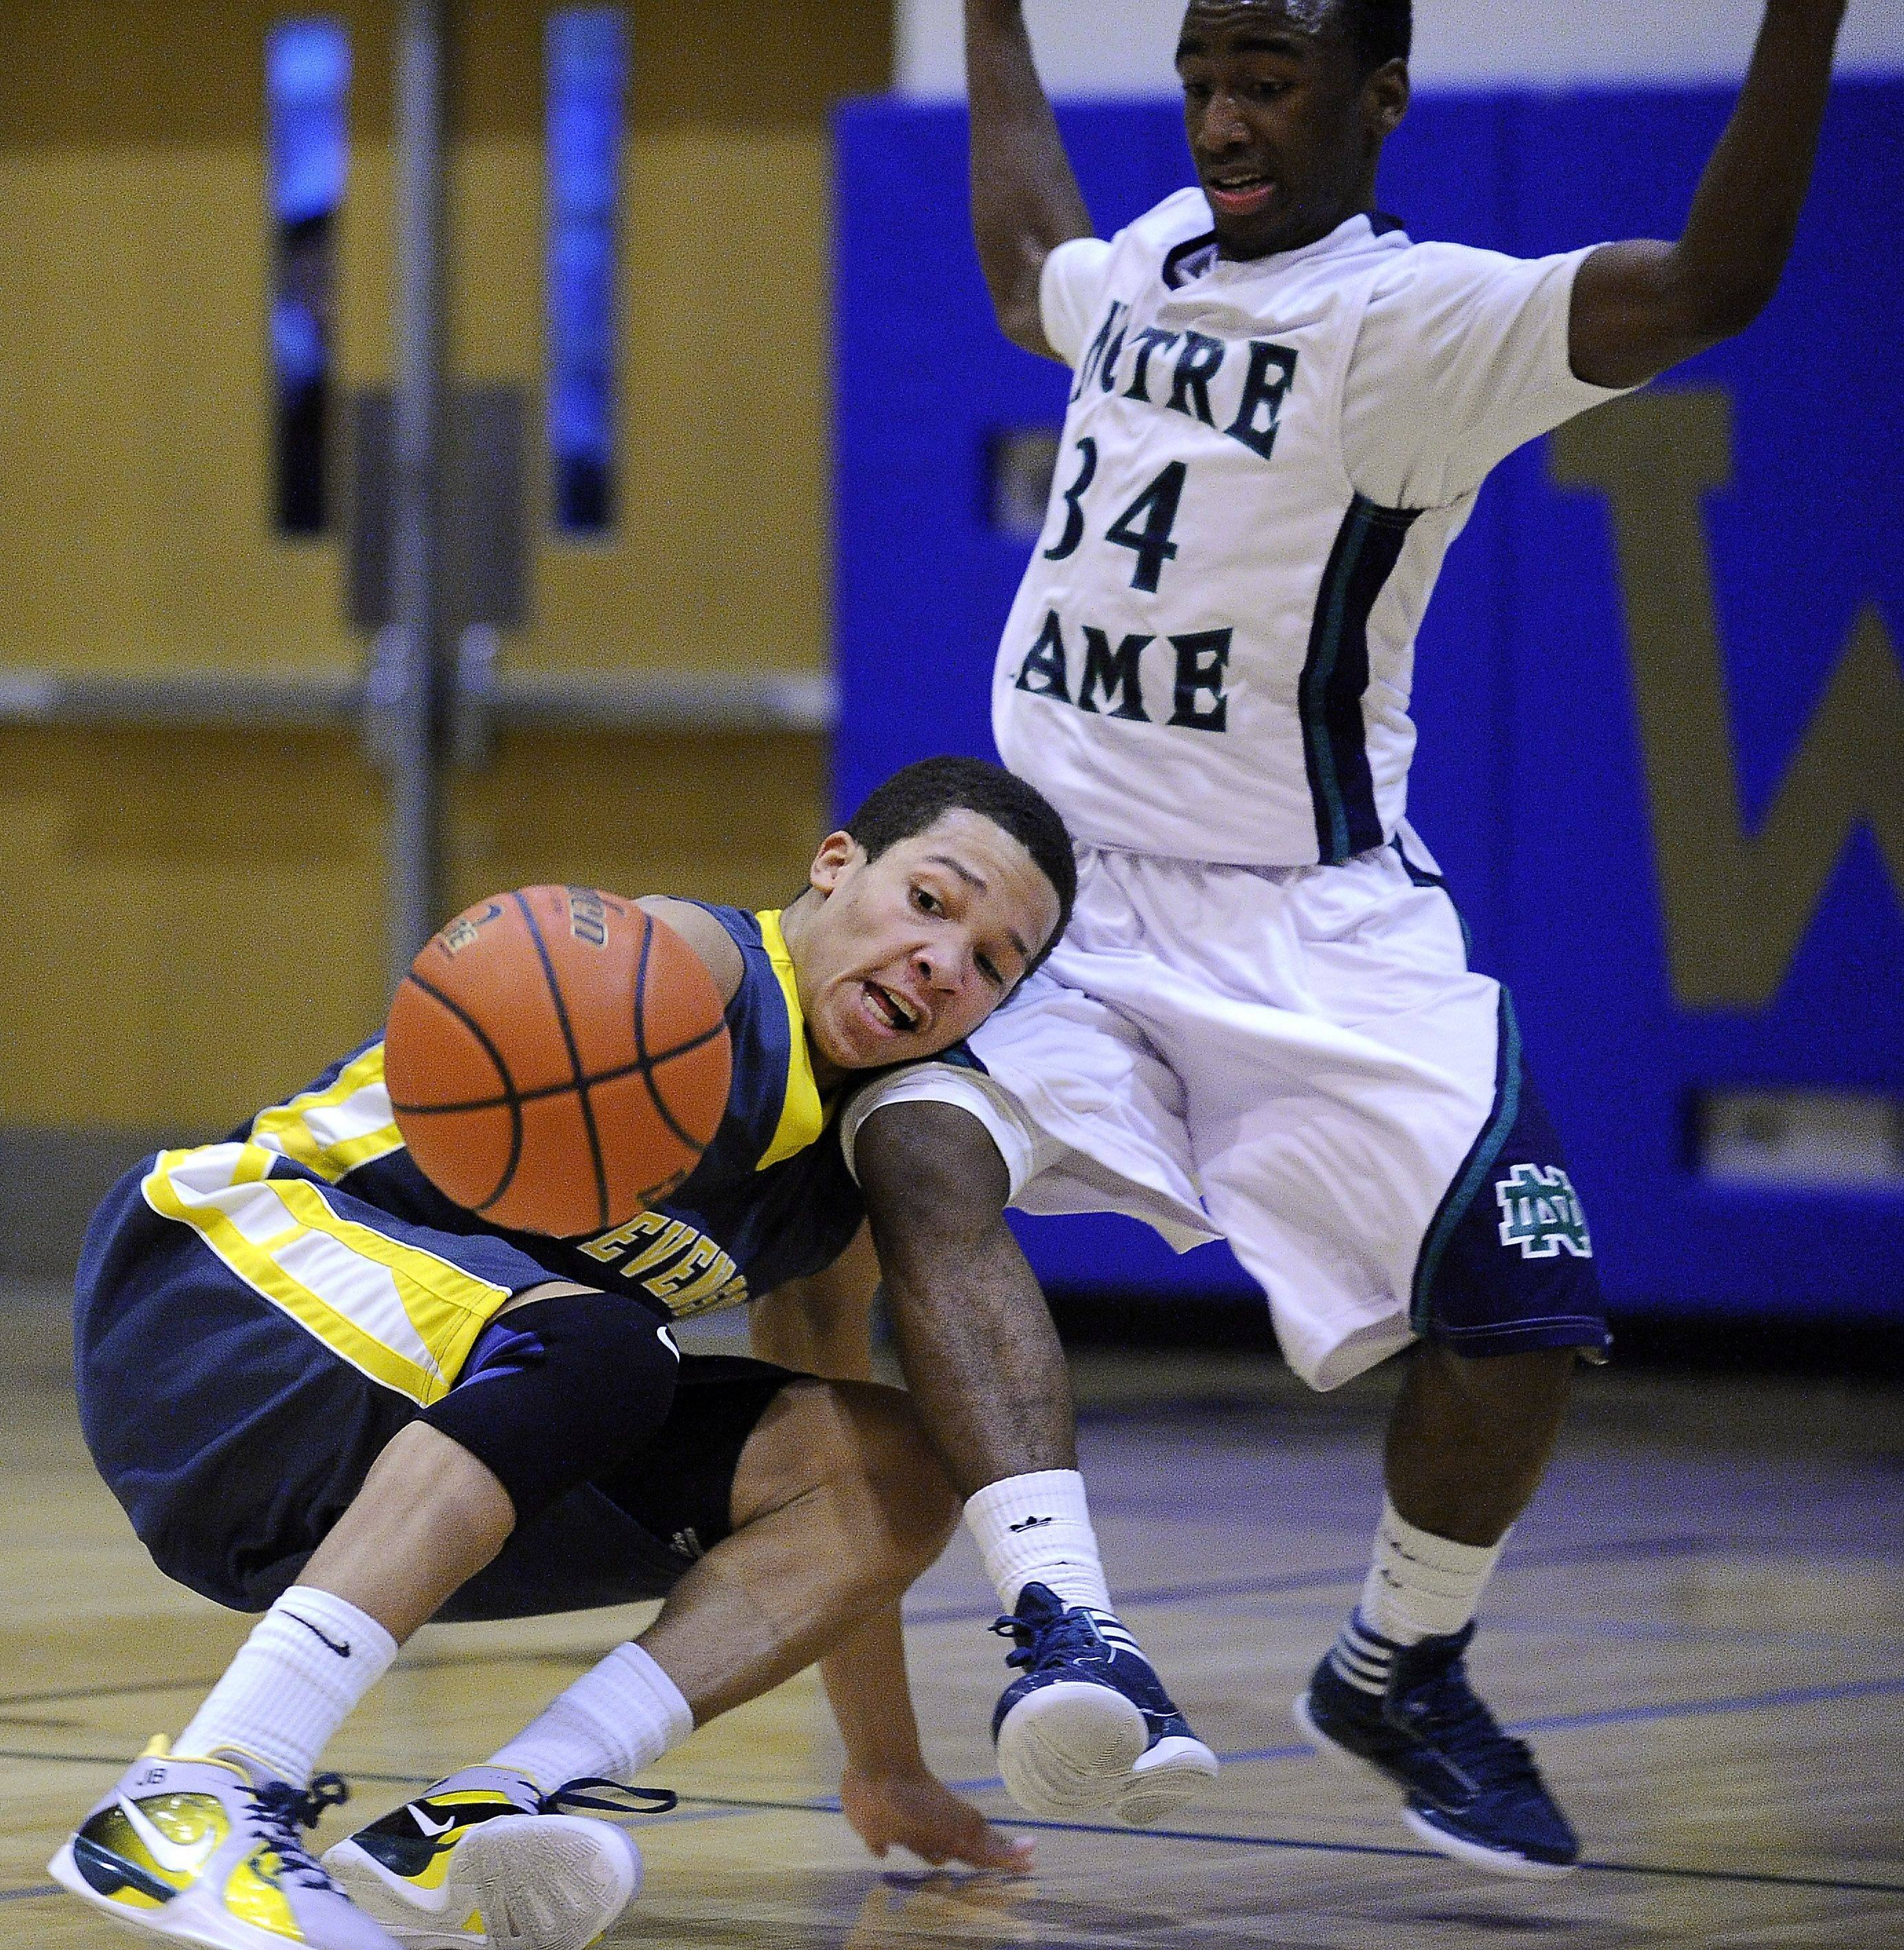 Stevenson's Jalen Brunson collides with Notre Dame's Donte Stephenson in the second quarter and is scooped up by Stephenson for the turnover at the 34th Annual Wheeling Wildcat Hardwood Classic Boys Basketball Tournament at Wheeling High School on Thursday.